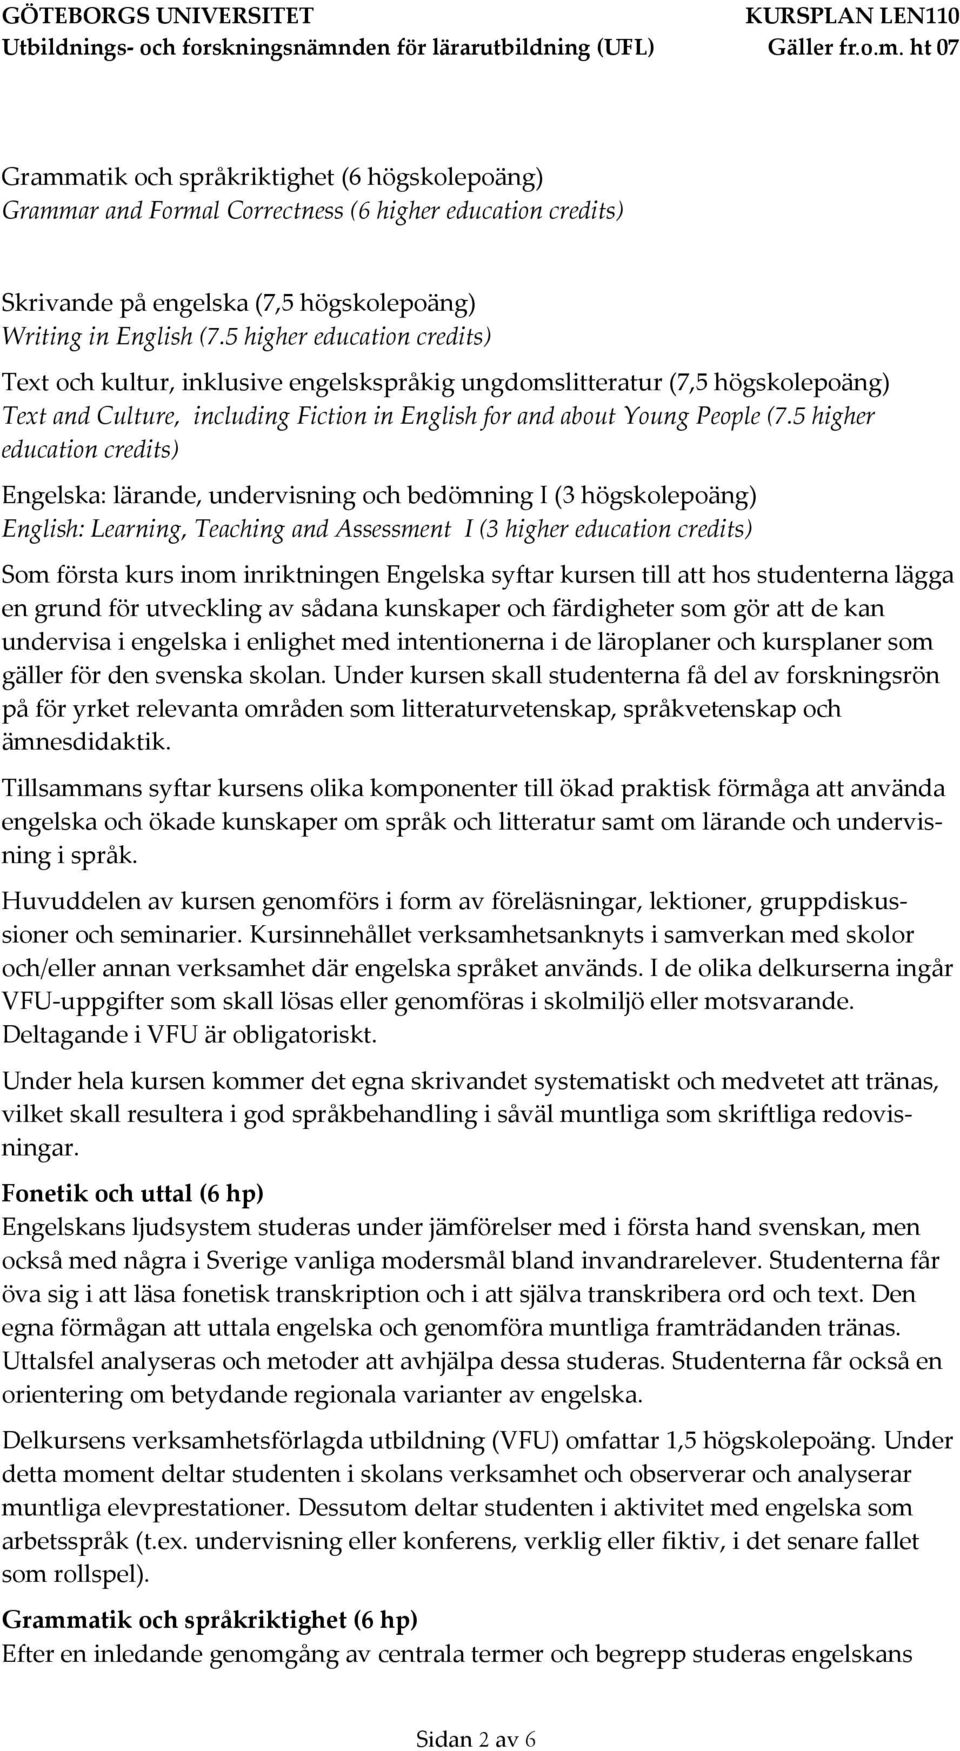 5 higher education credits) Engelska: lärande, undervisning och bedömning I (3 högskolepoäng) English: Learning, Teaching and Assessment I (3 higher education credits) Som första kurs inom